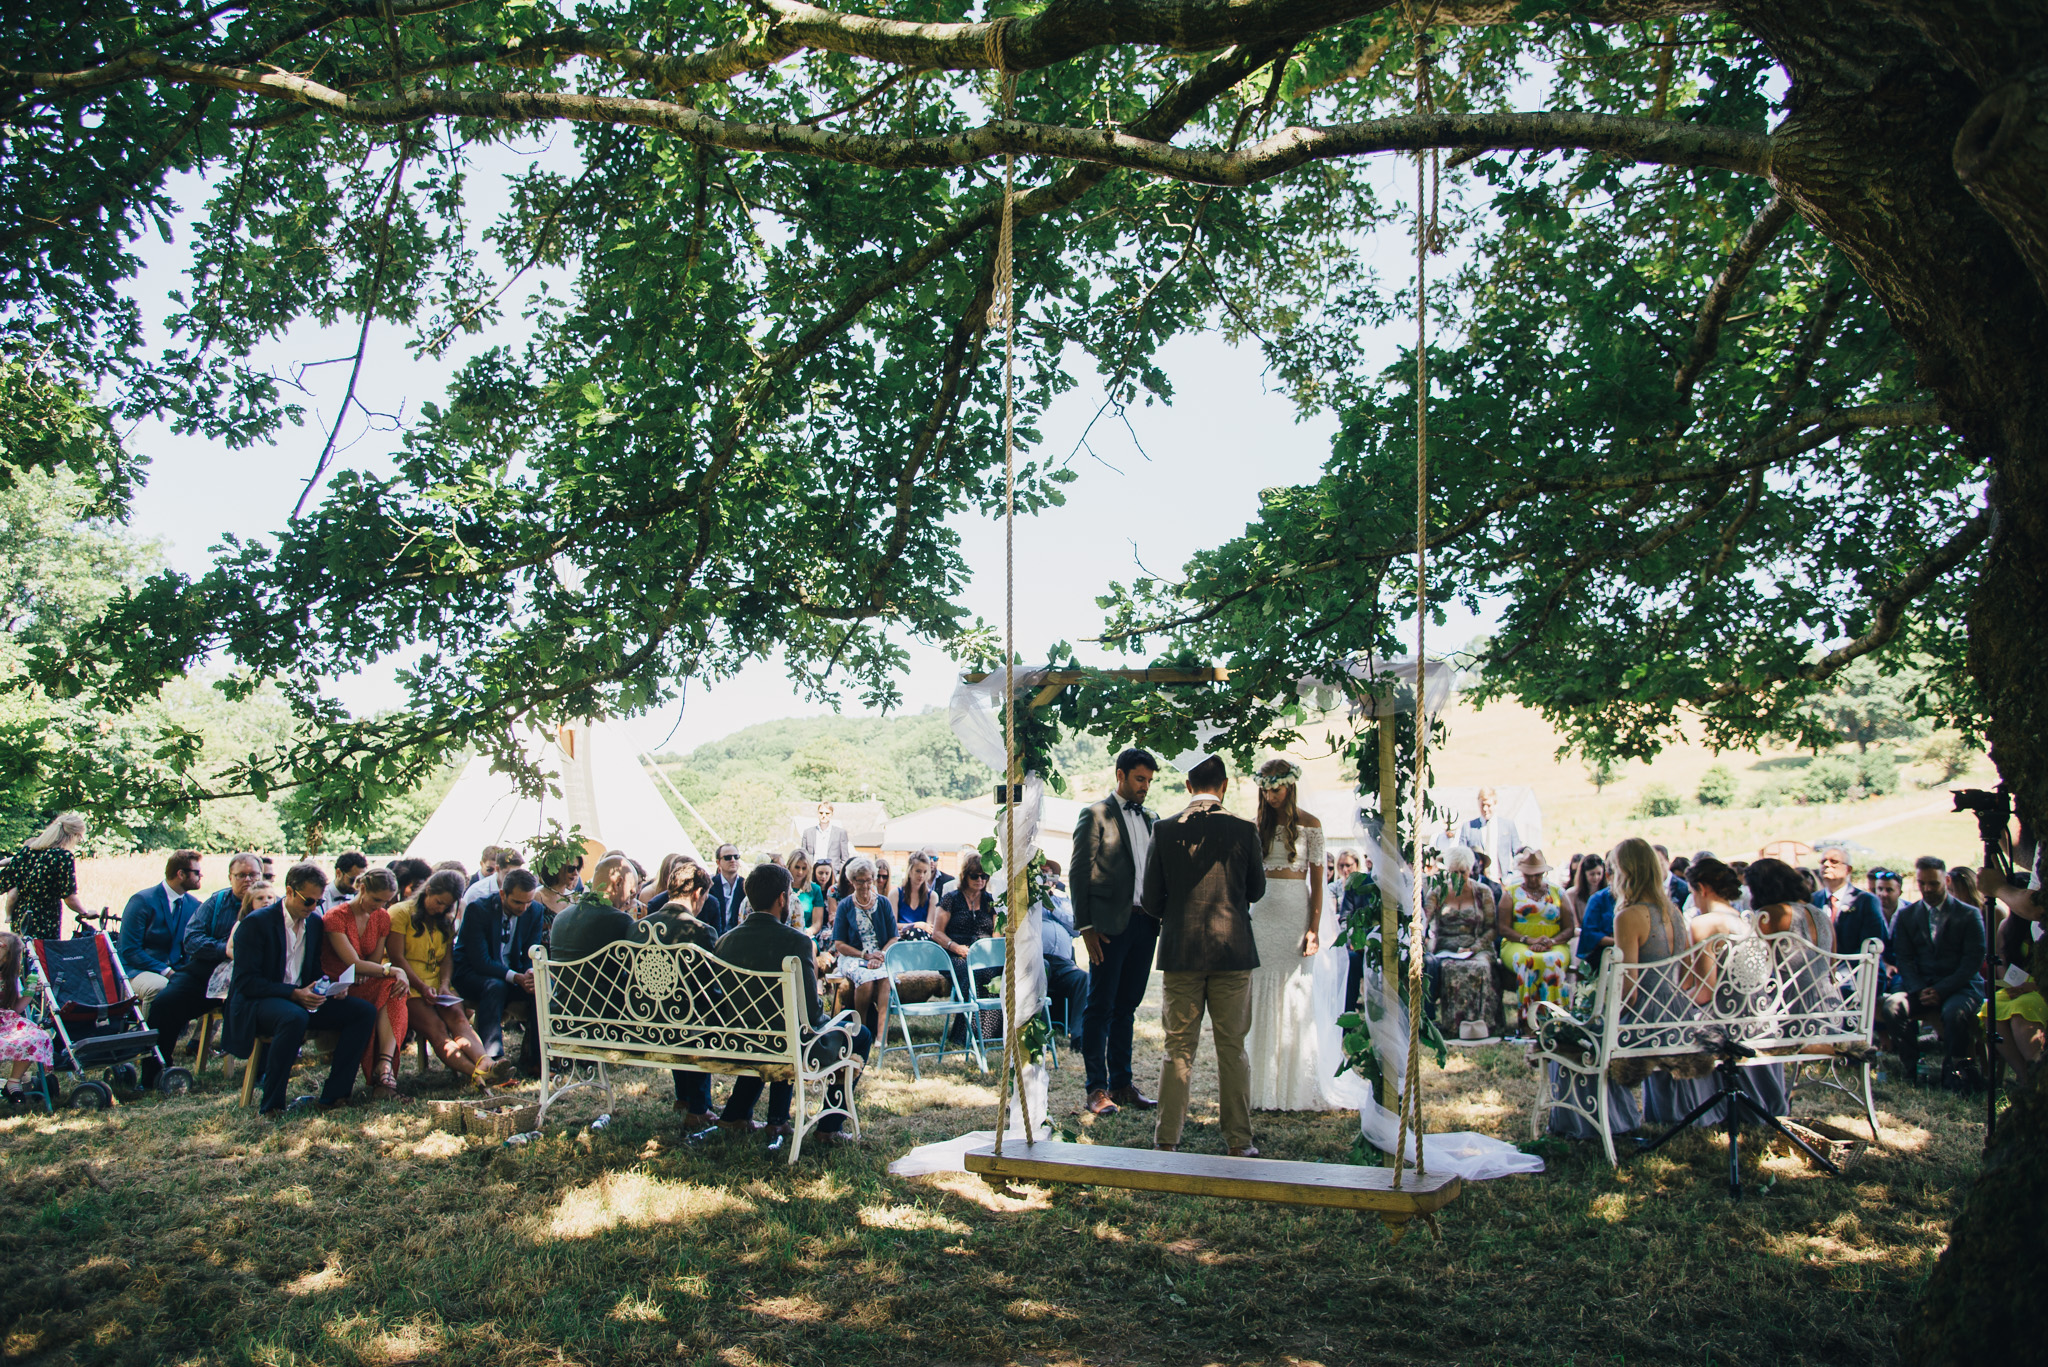 An outdoor wedding ceremony under an ancient tree